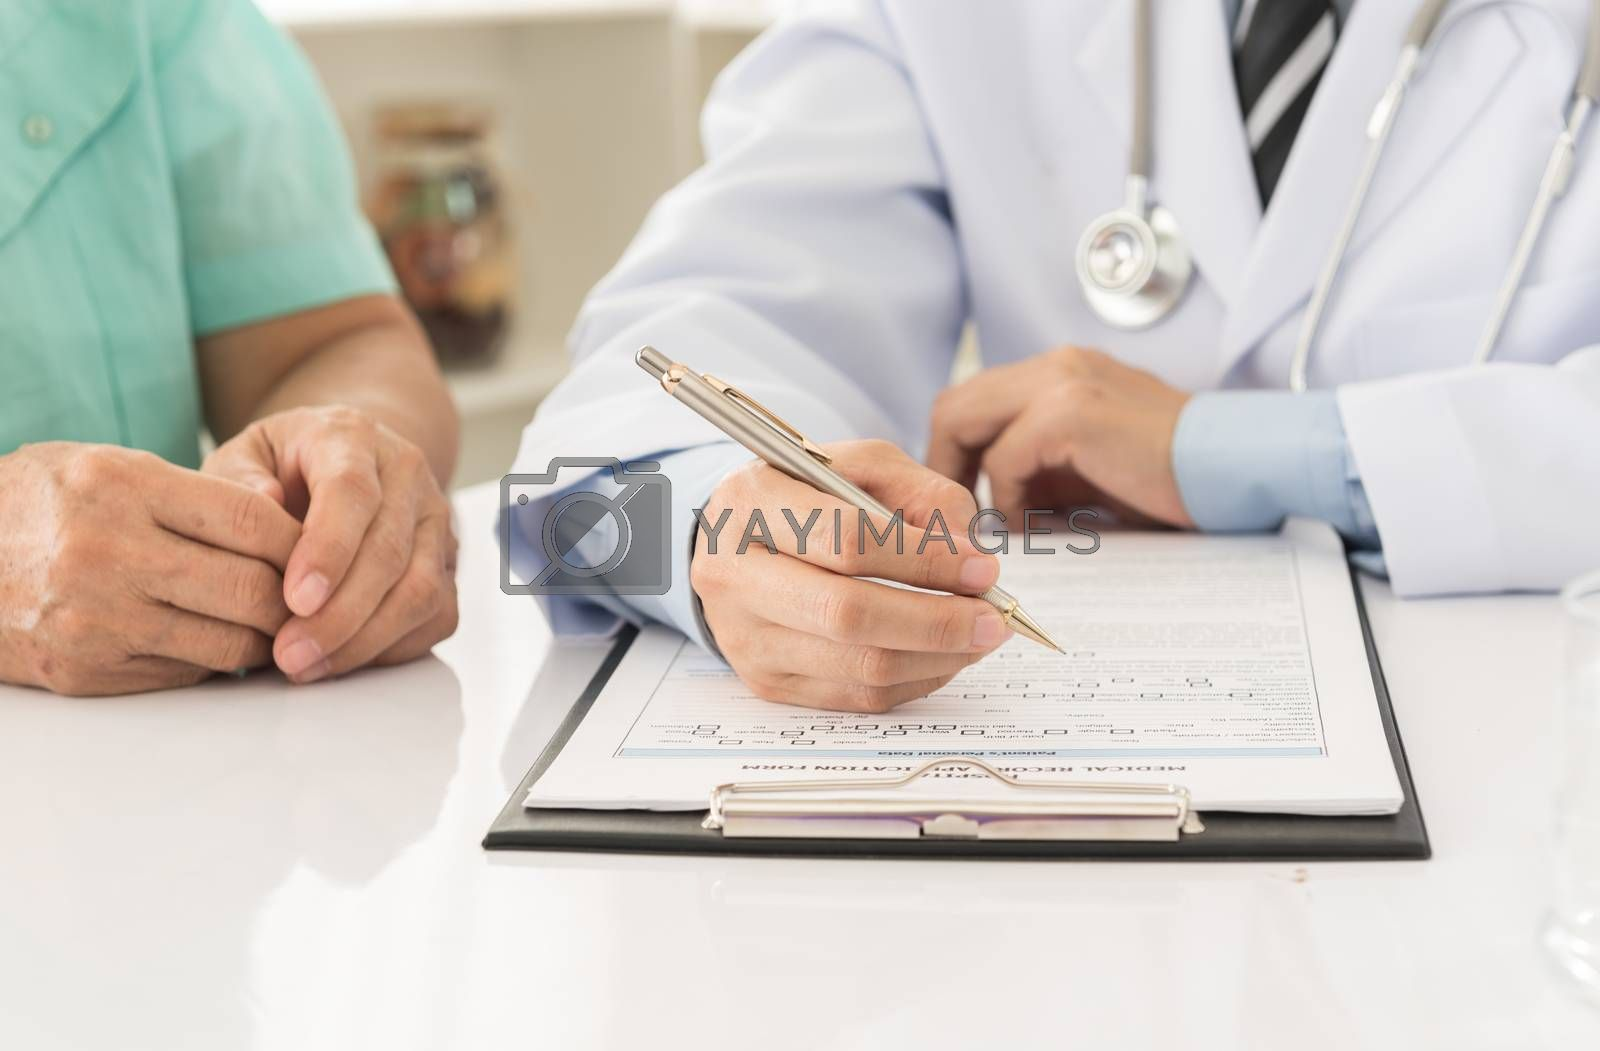 doctor record data on application form while consulting patient